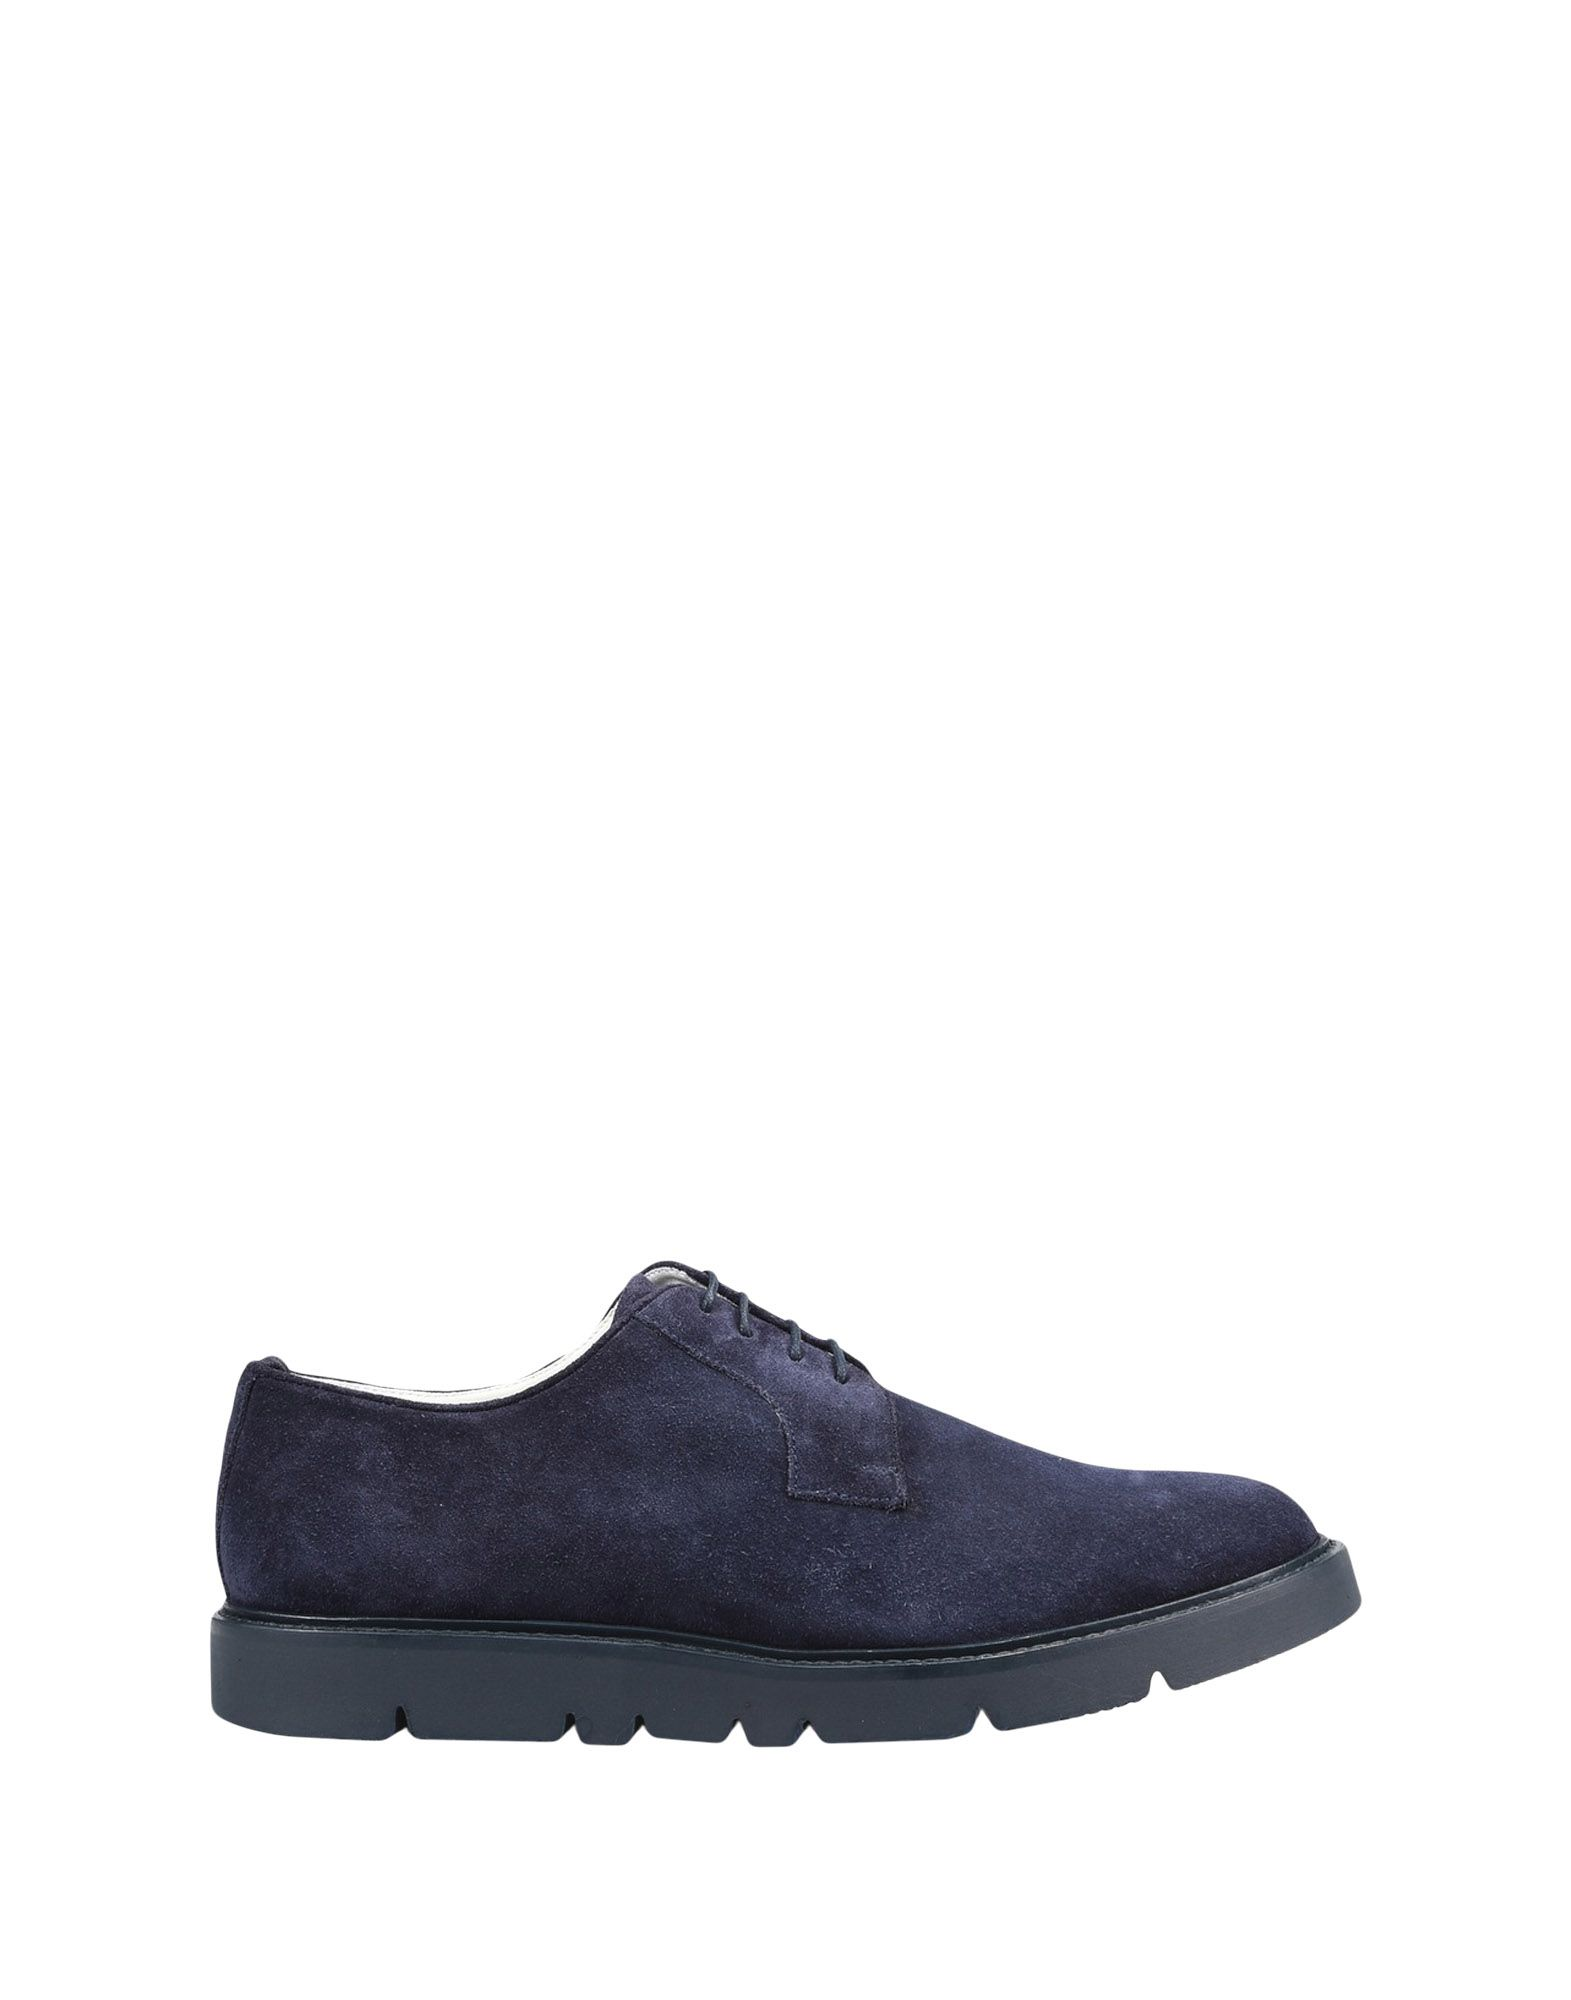 acdcee100fad ... Chaussures À Lacets Armani Jeans Femme - Chaussures À Lacets Armani  Jeans sur ...